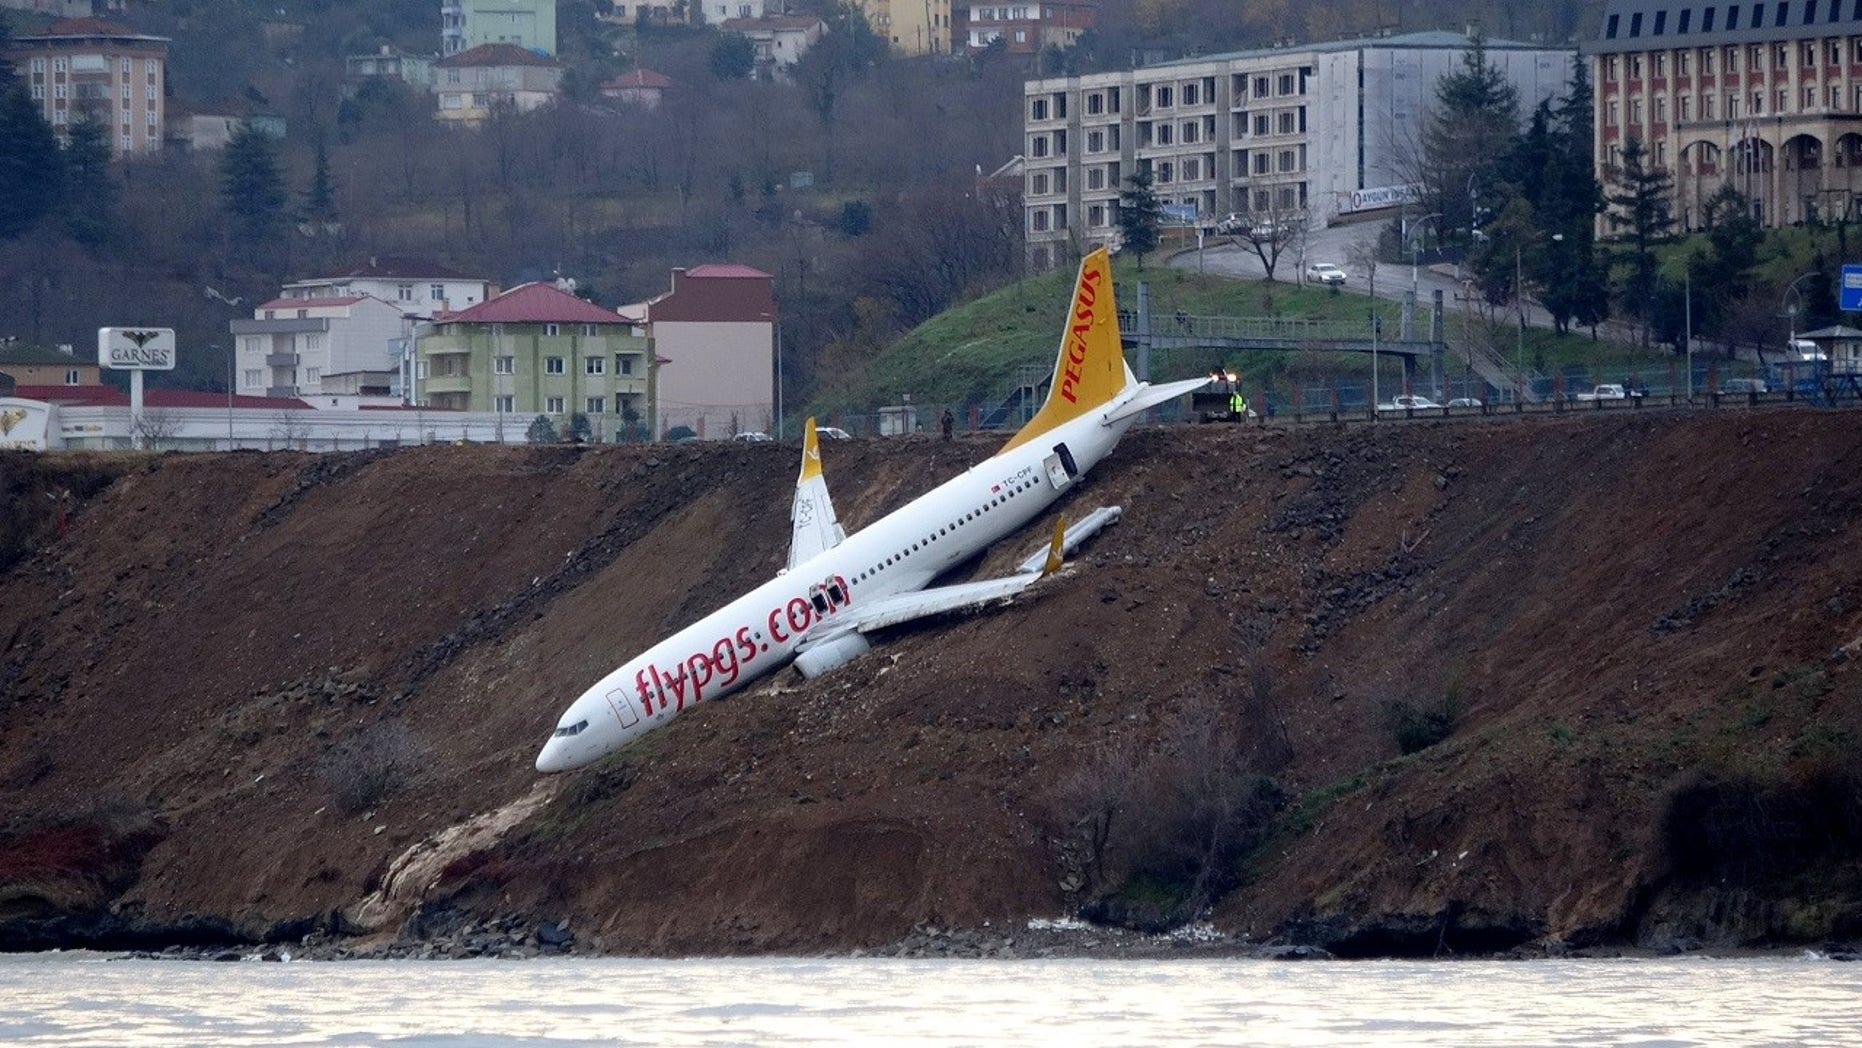 A Pegasus Airlines passenger plane skidded off the runway at Trabzon airport near the Black Sea.